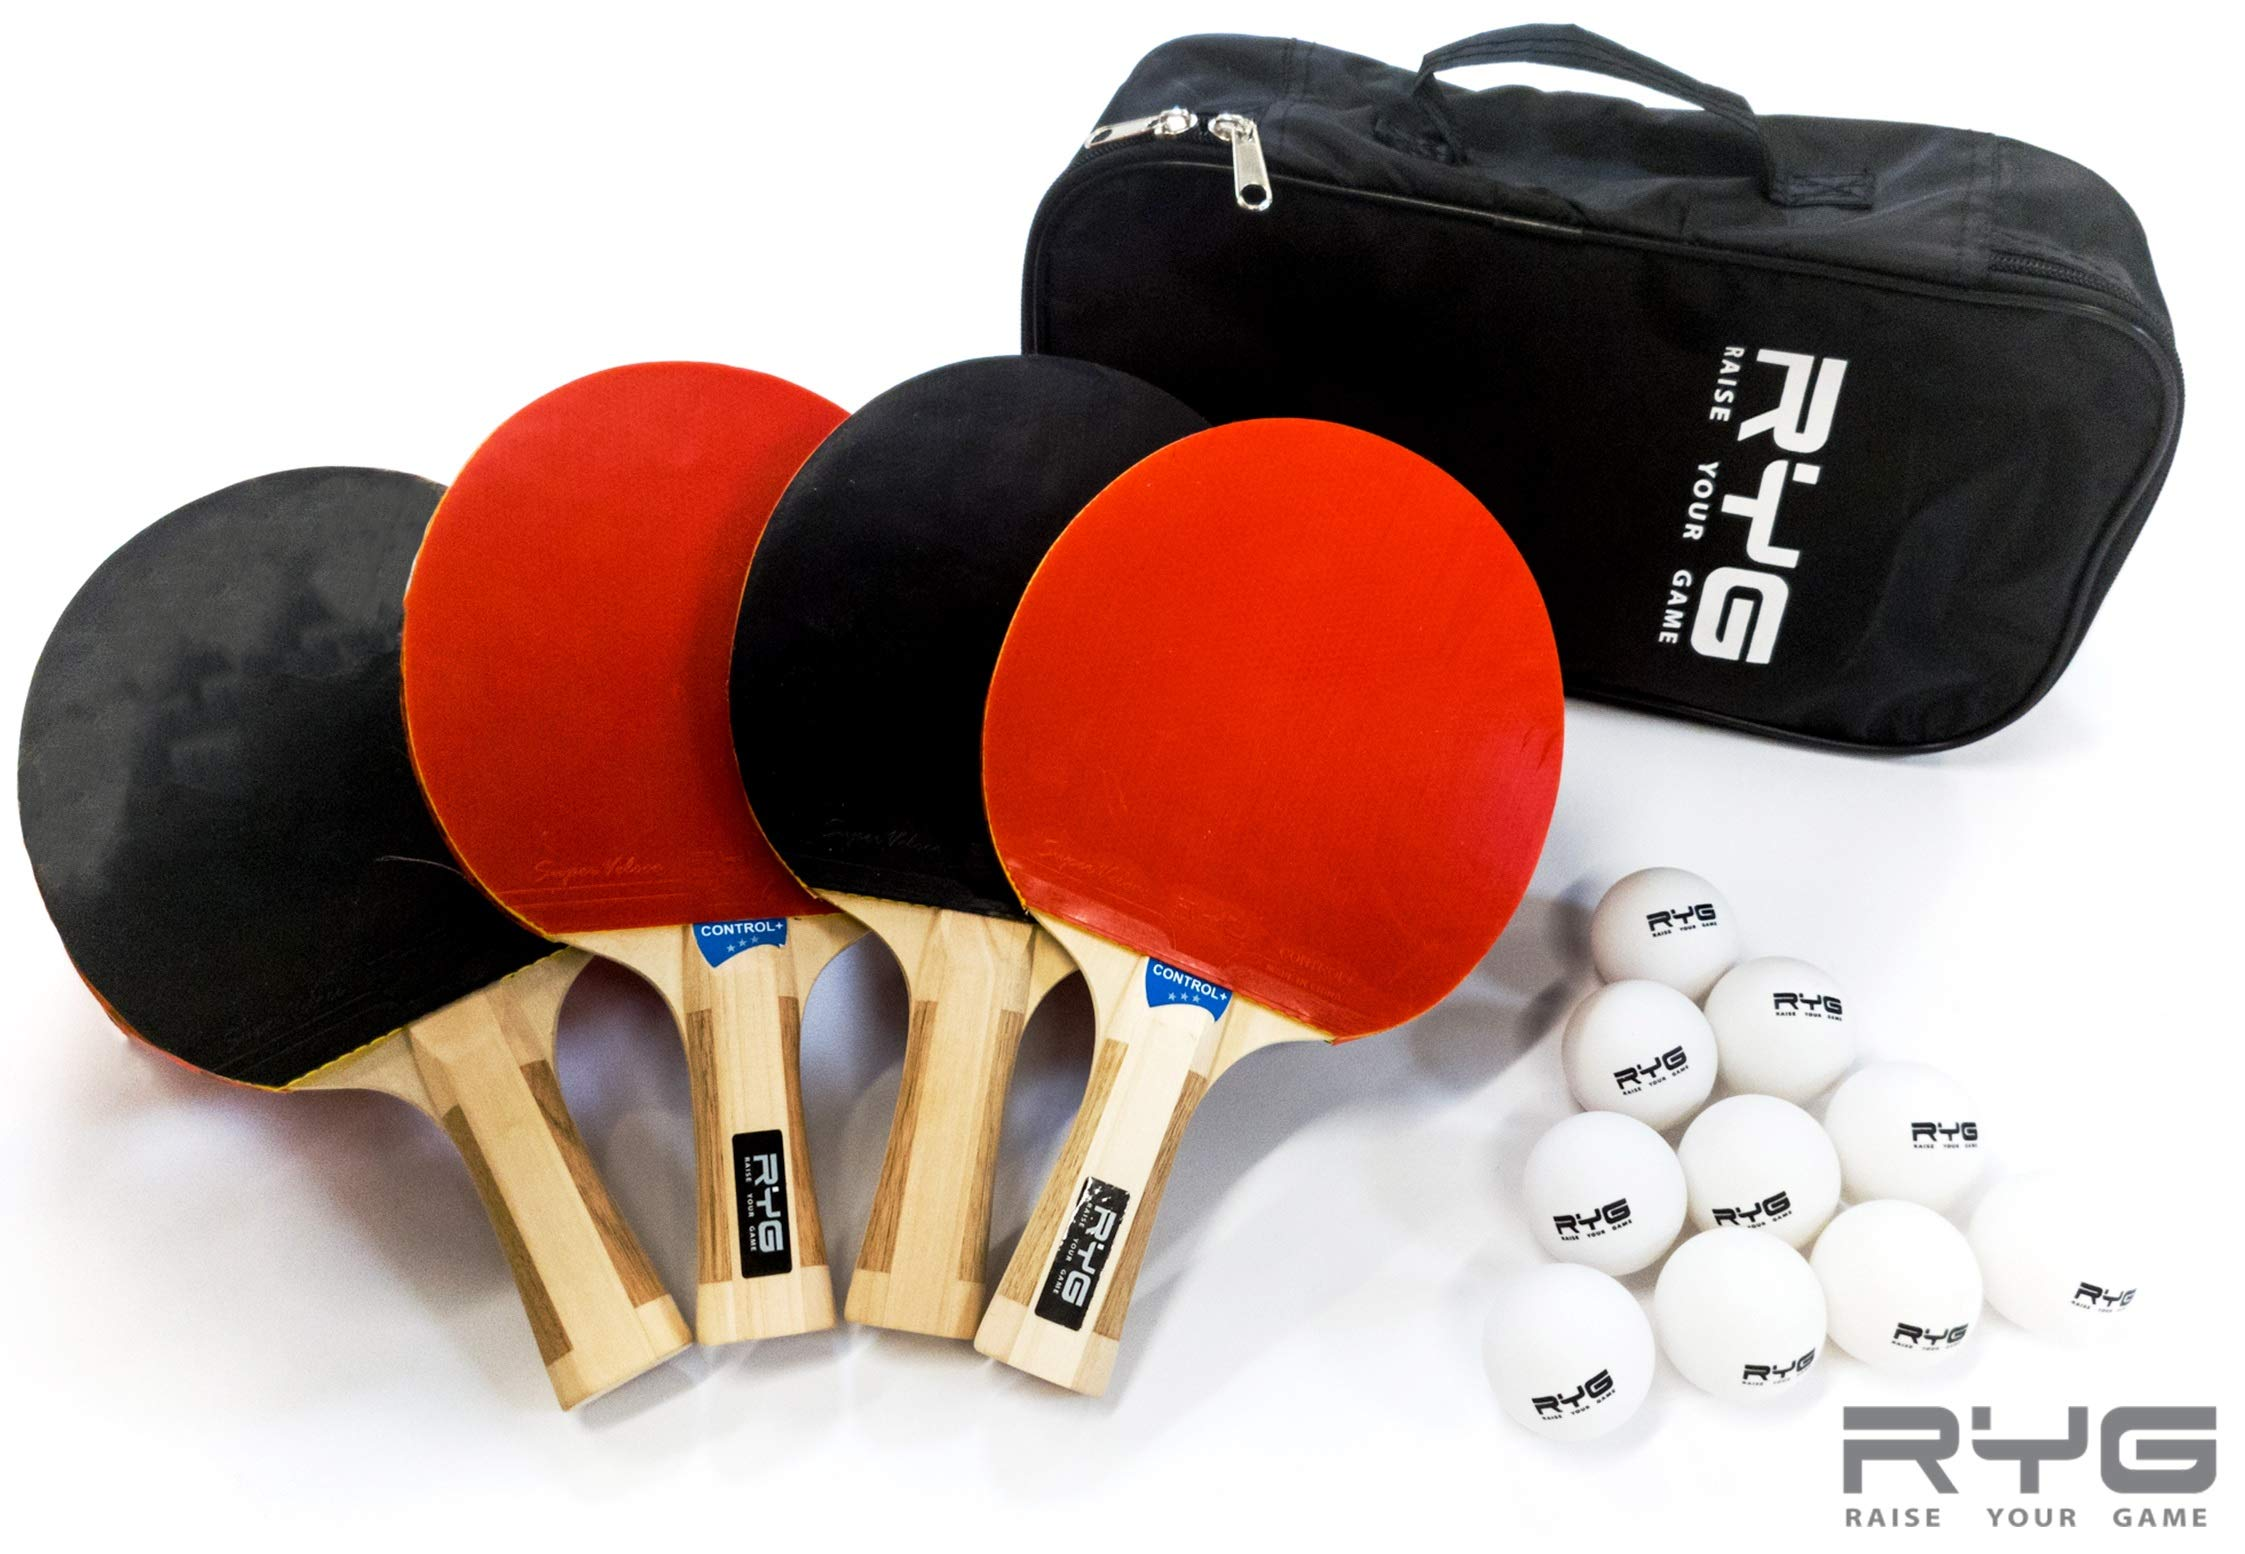 8 Professional Balls and Portable Cover Case Bag Pro Trainning and Recreational Ping-Pong Paddles Ideal for Outdoor or Indoor Games VIVVEA Ping Pong Paddle Set 4 Premium Table Tennis Rackets Pack